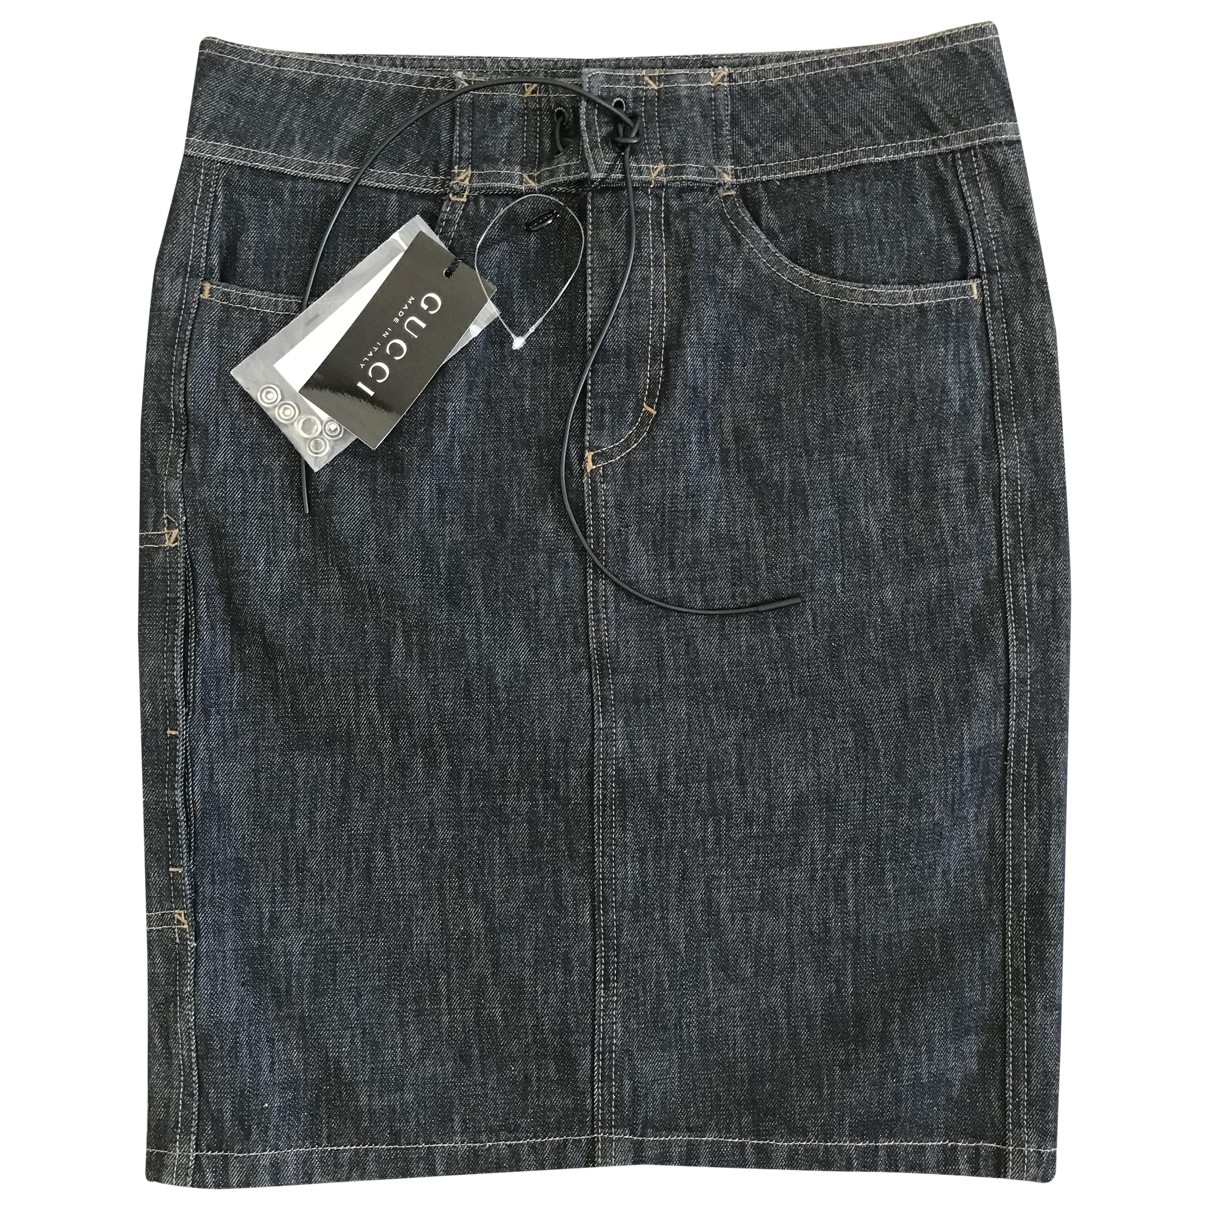 Gucci \N Grey Denim - Jeans skirt for Women 40 IT